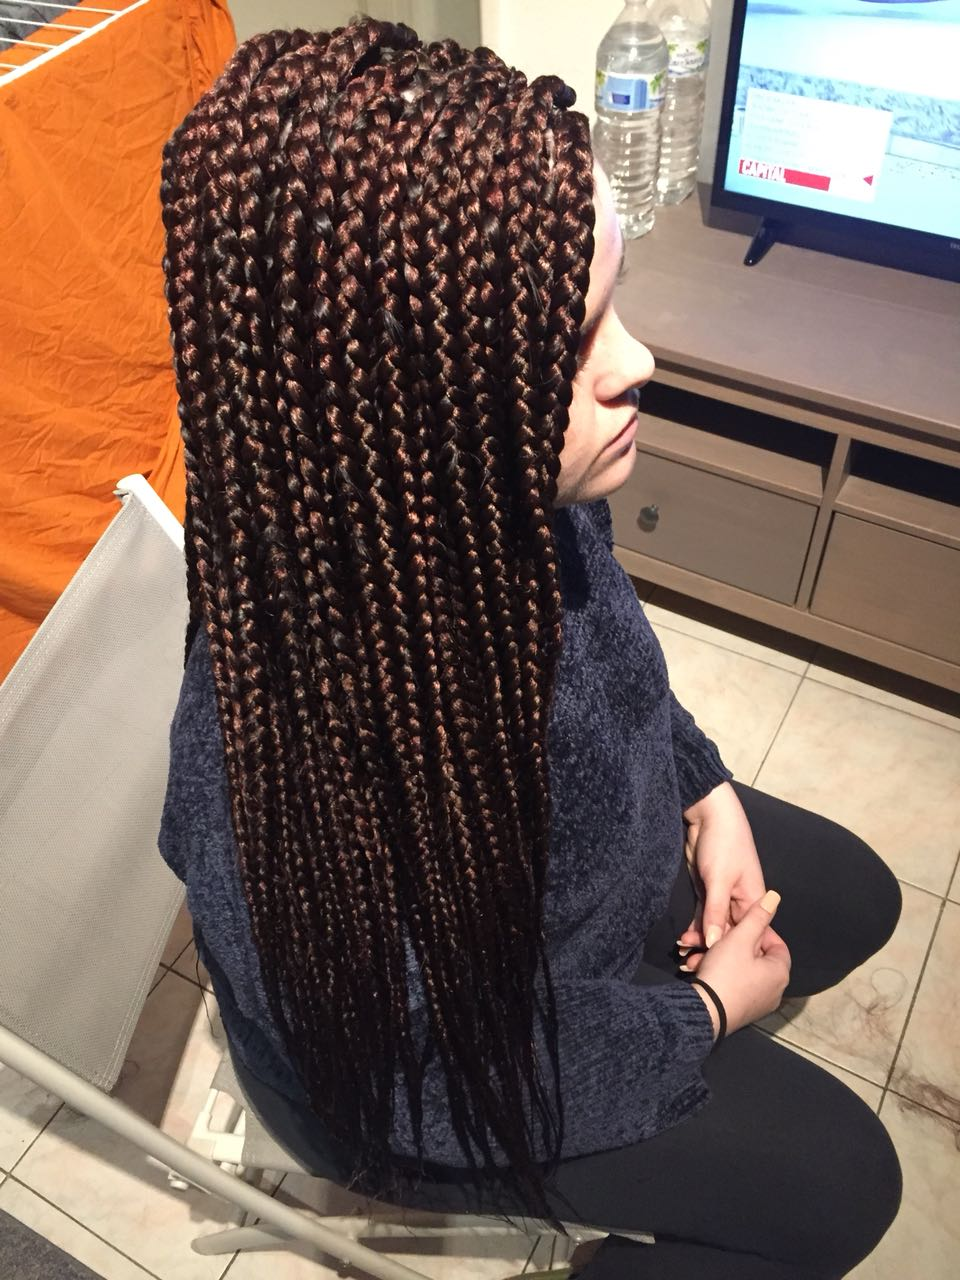 salon de coiffure afro tresse tresses box braids crochet braids vanilles tissages paris 75 77 78 91 92 93 94 95 ZWAMGPVJ